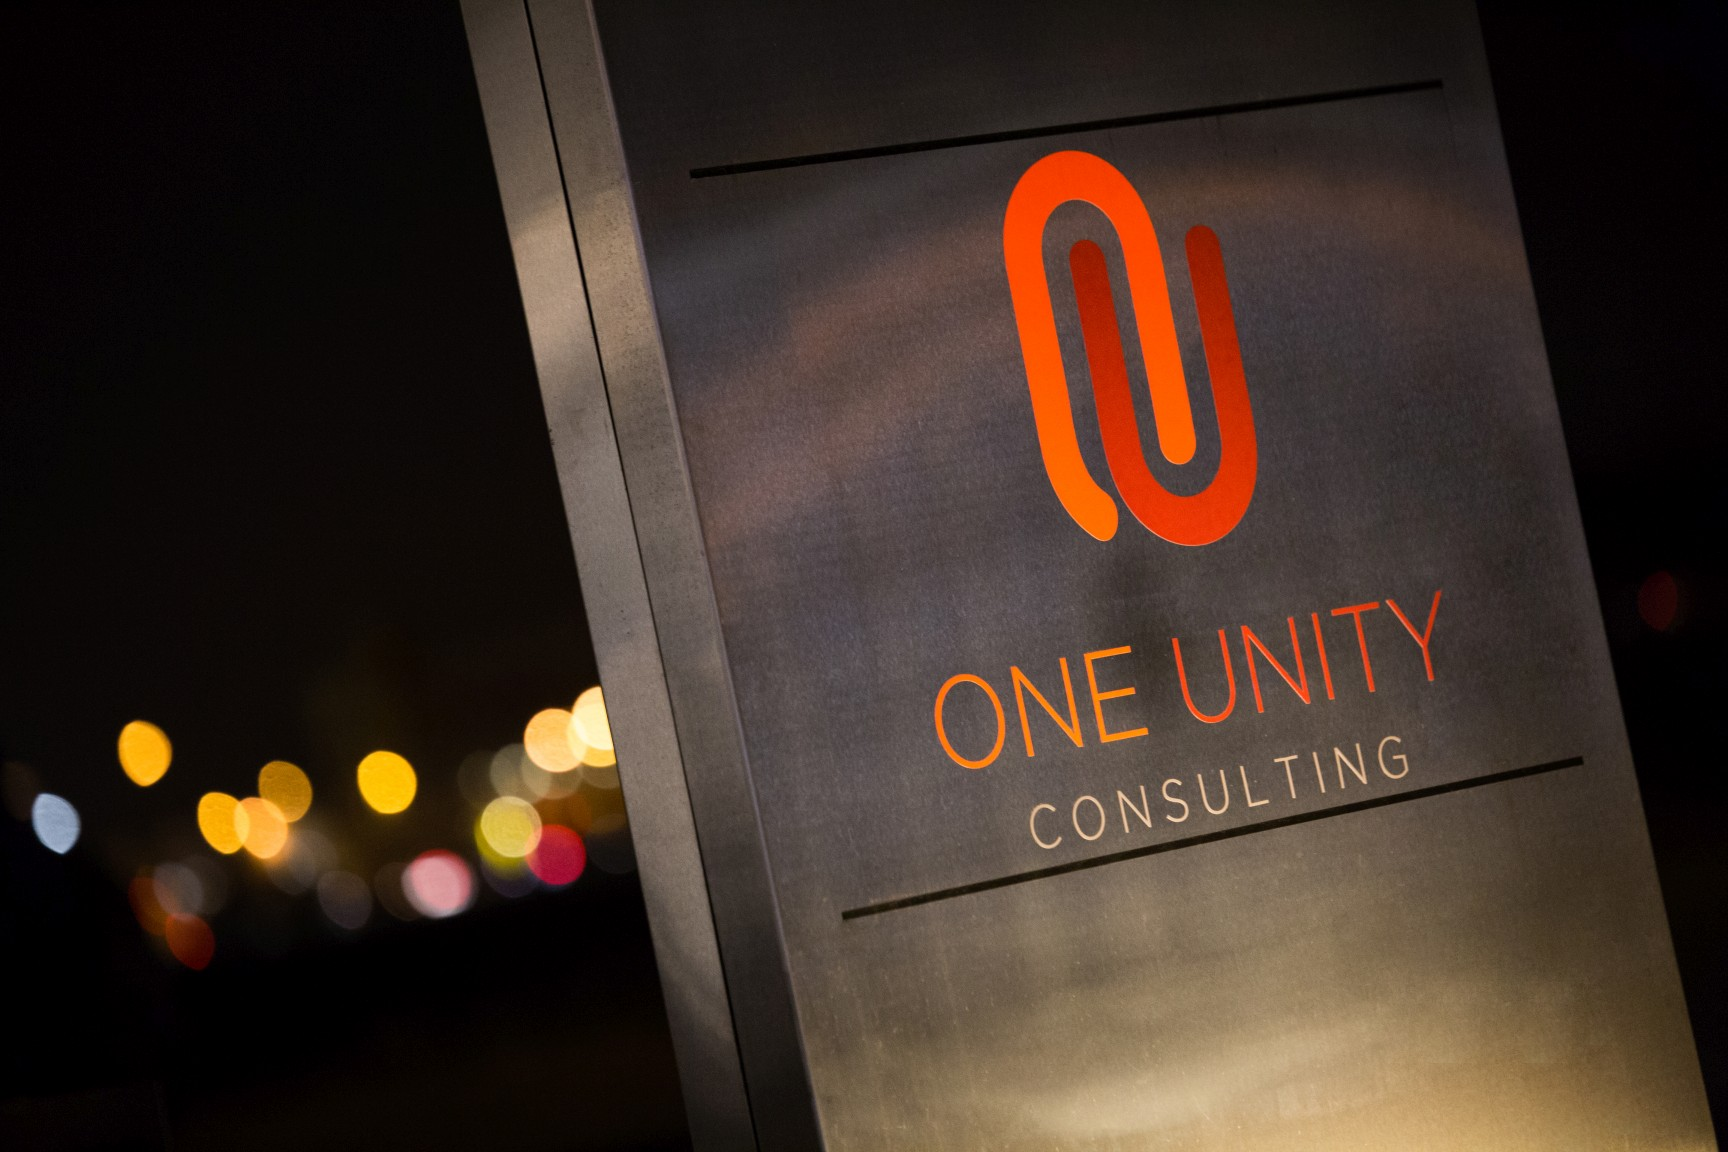 One Unity Consulting GmbH & Co.KG